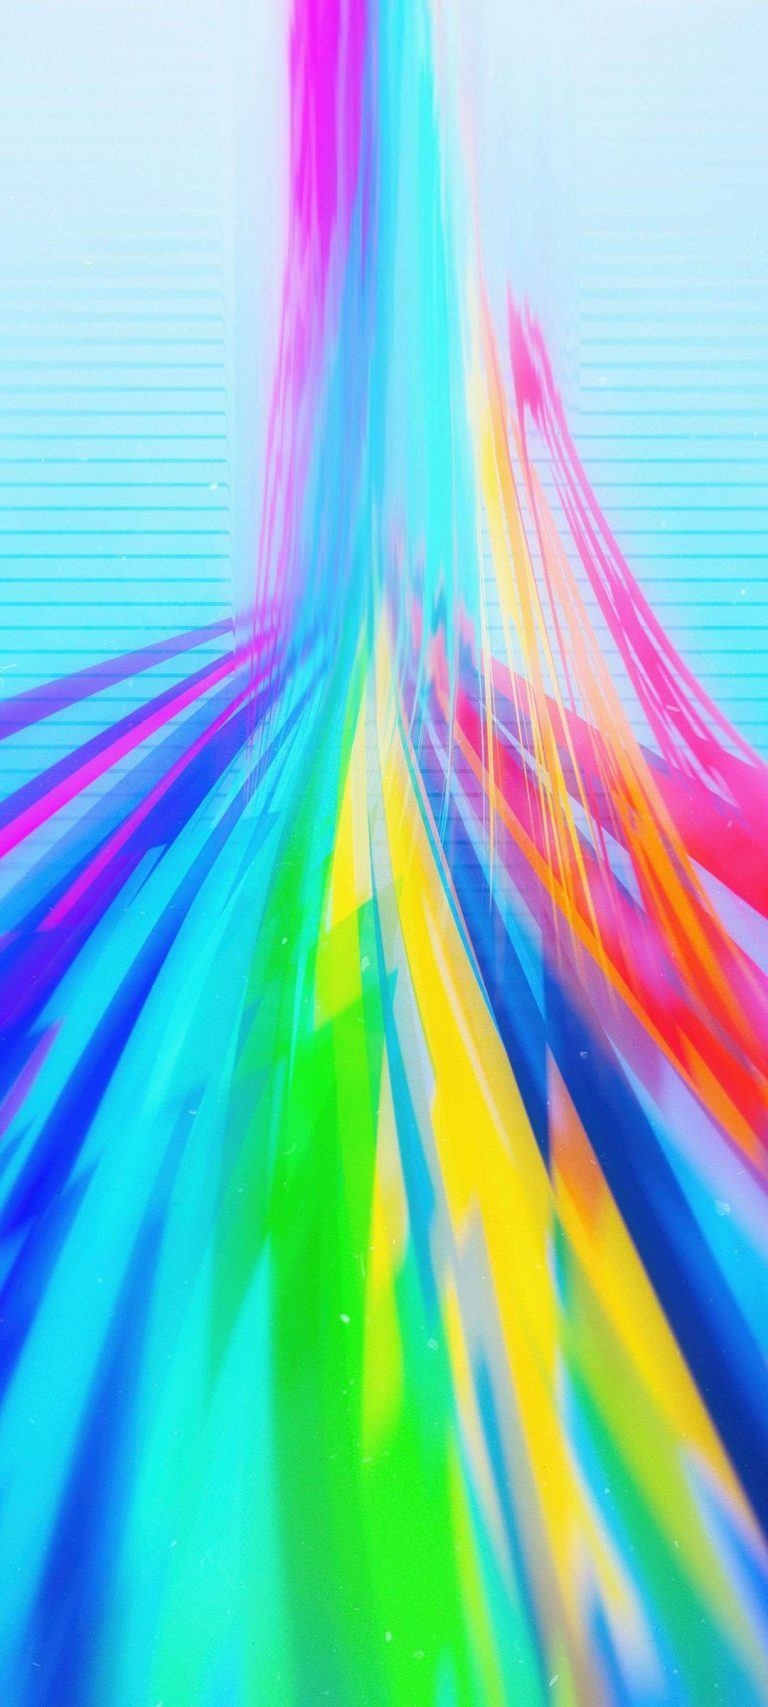 Girly Colored Lines 1080x2400 768x1707